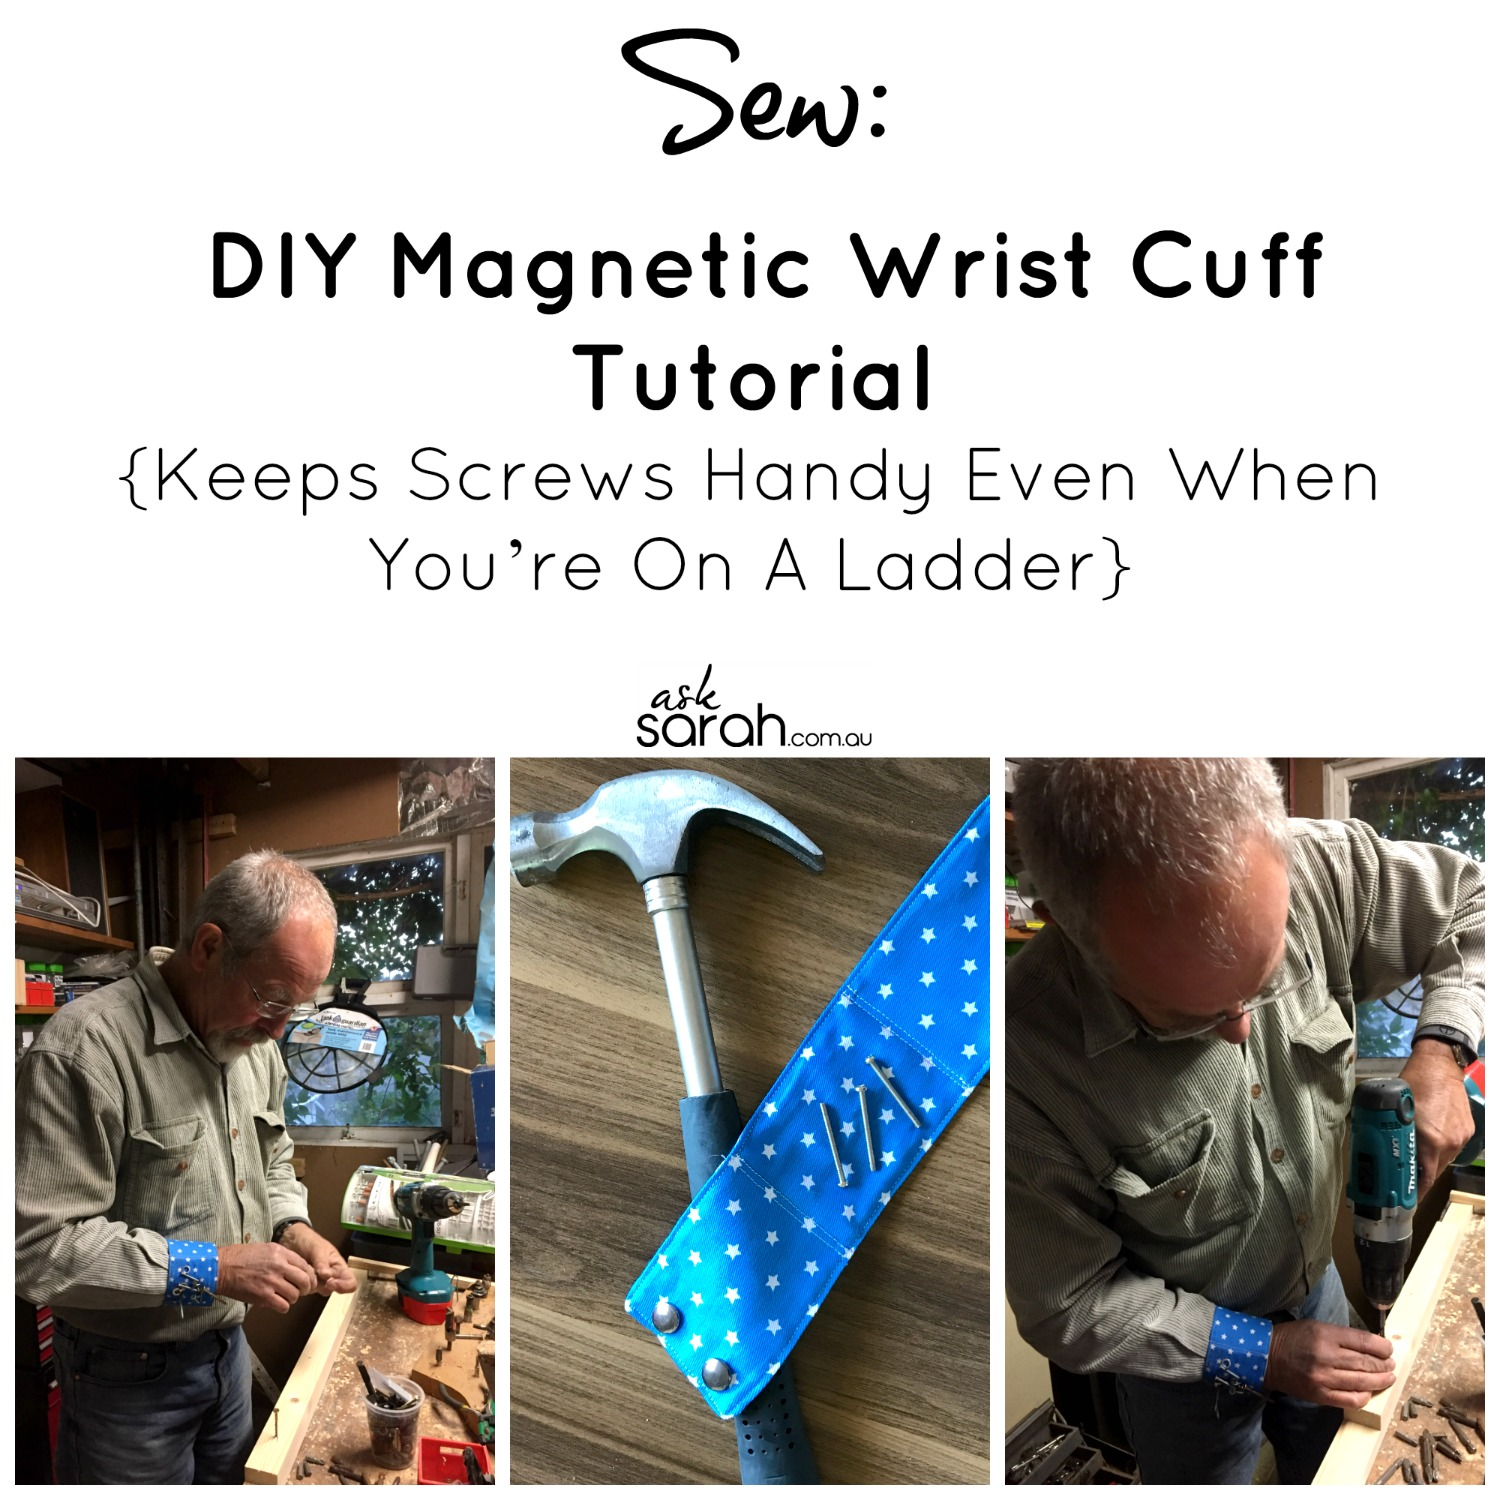 sew-diy-magnetic-wrist-cuff-tutorial-keeps-screws-handy-even-when-youre-on-a-ladder-intro